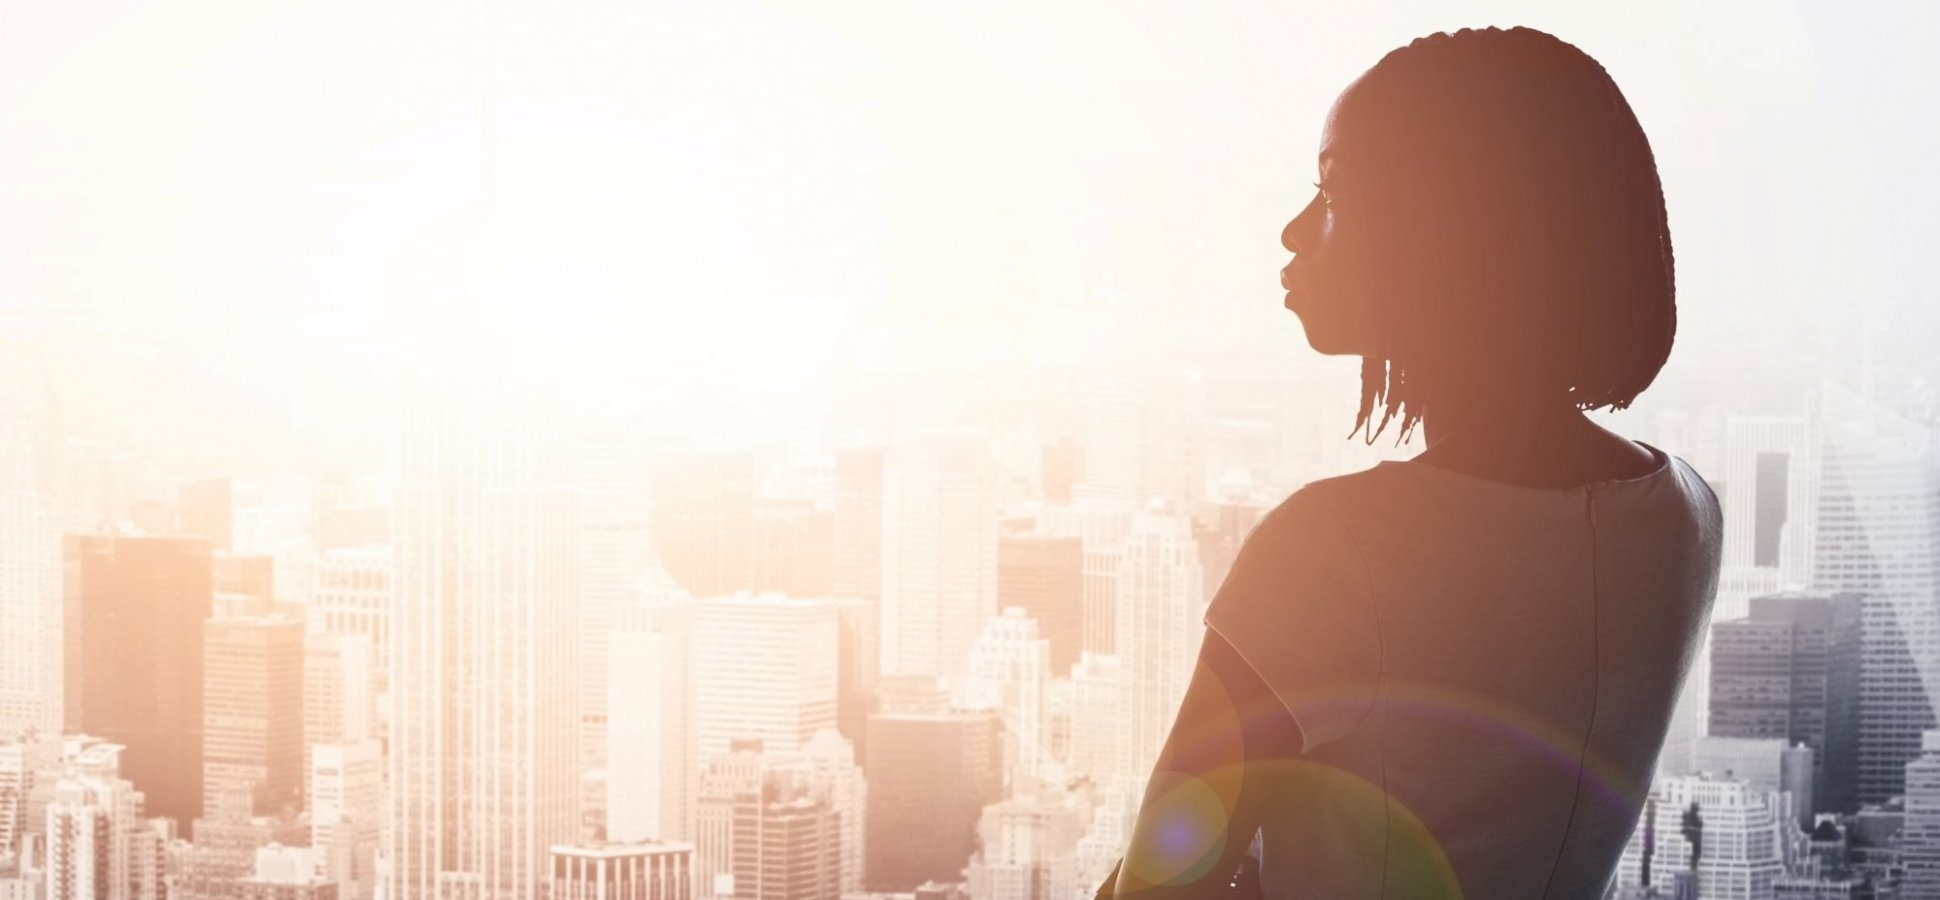 Why You Should Hire More Female Leaders, According to a New Study